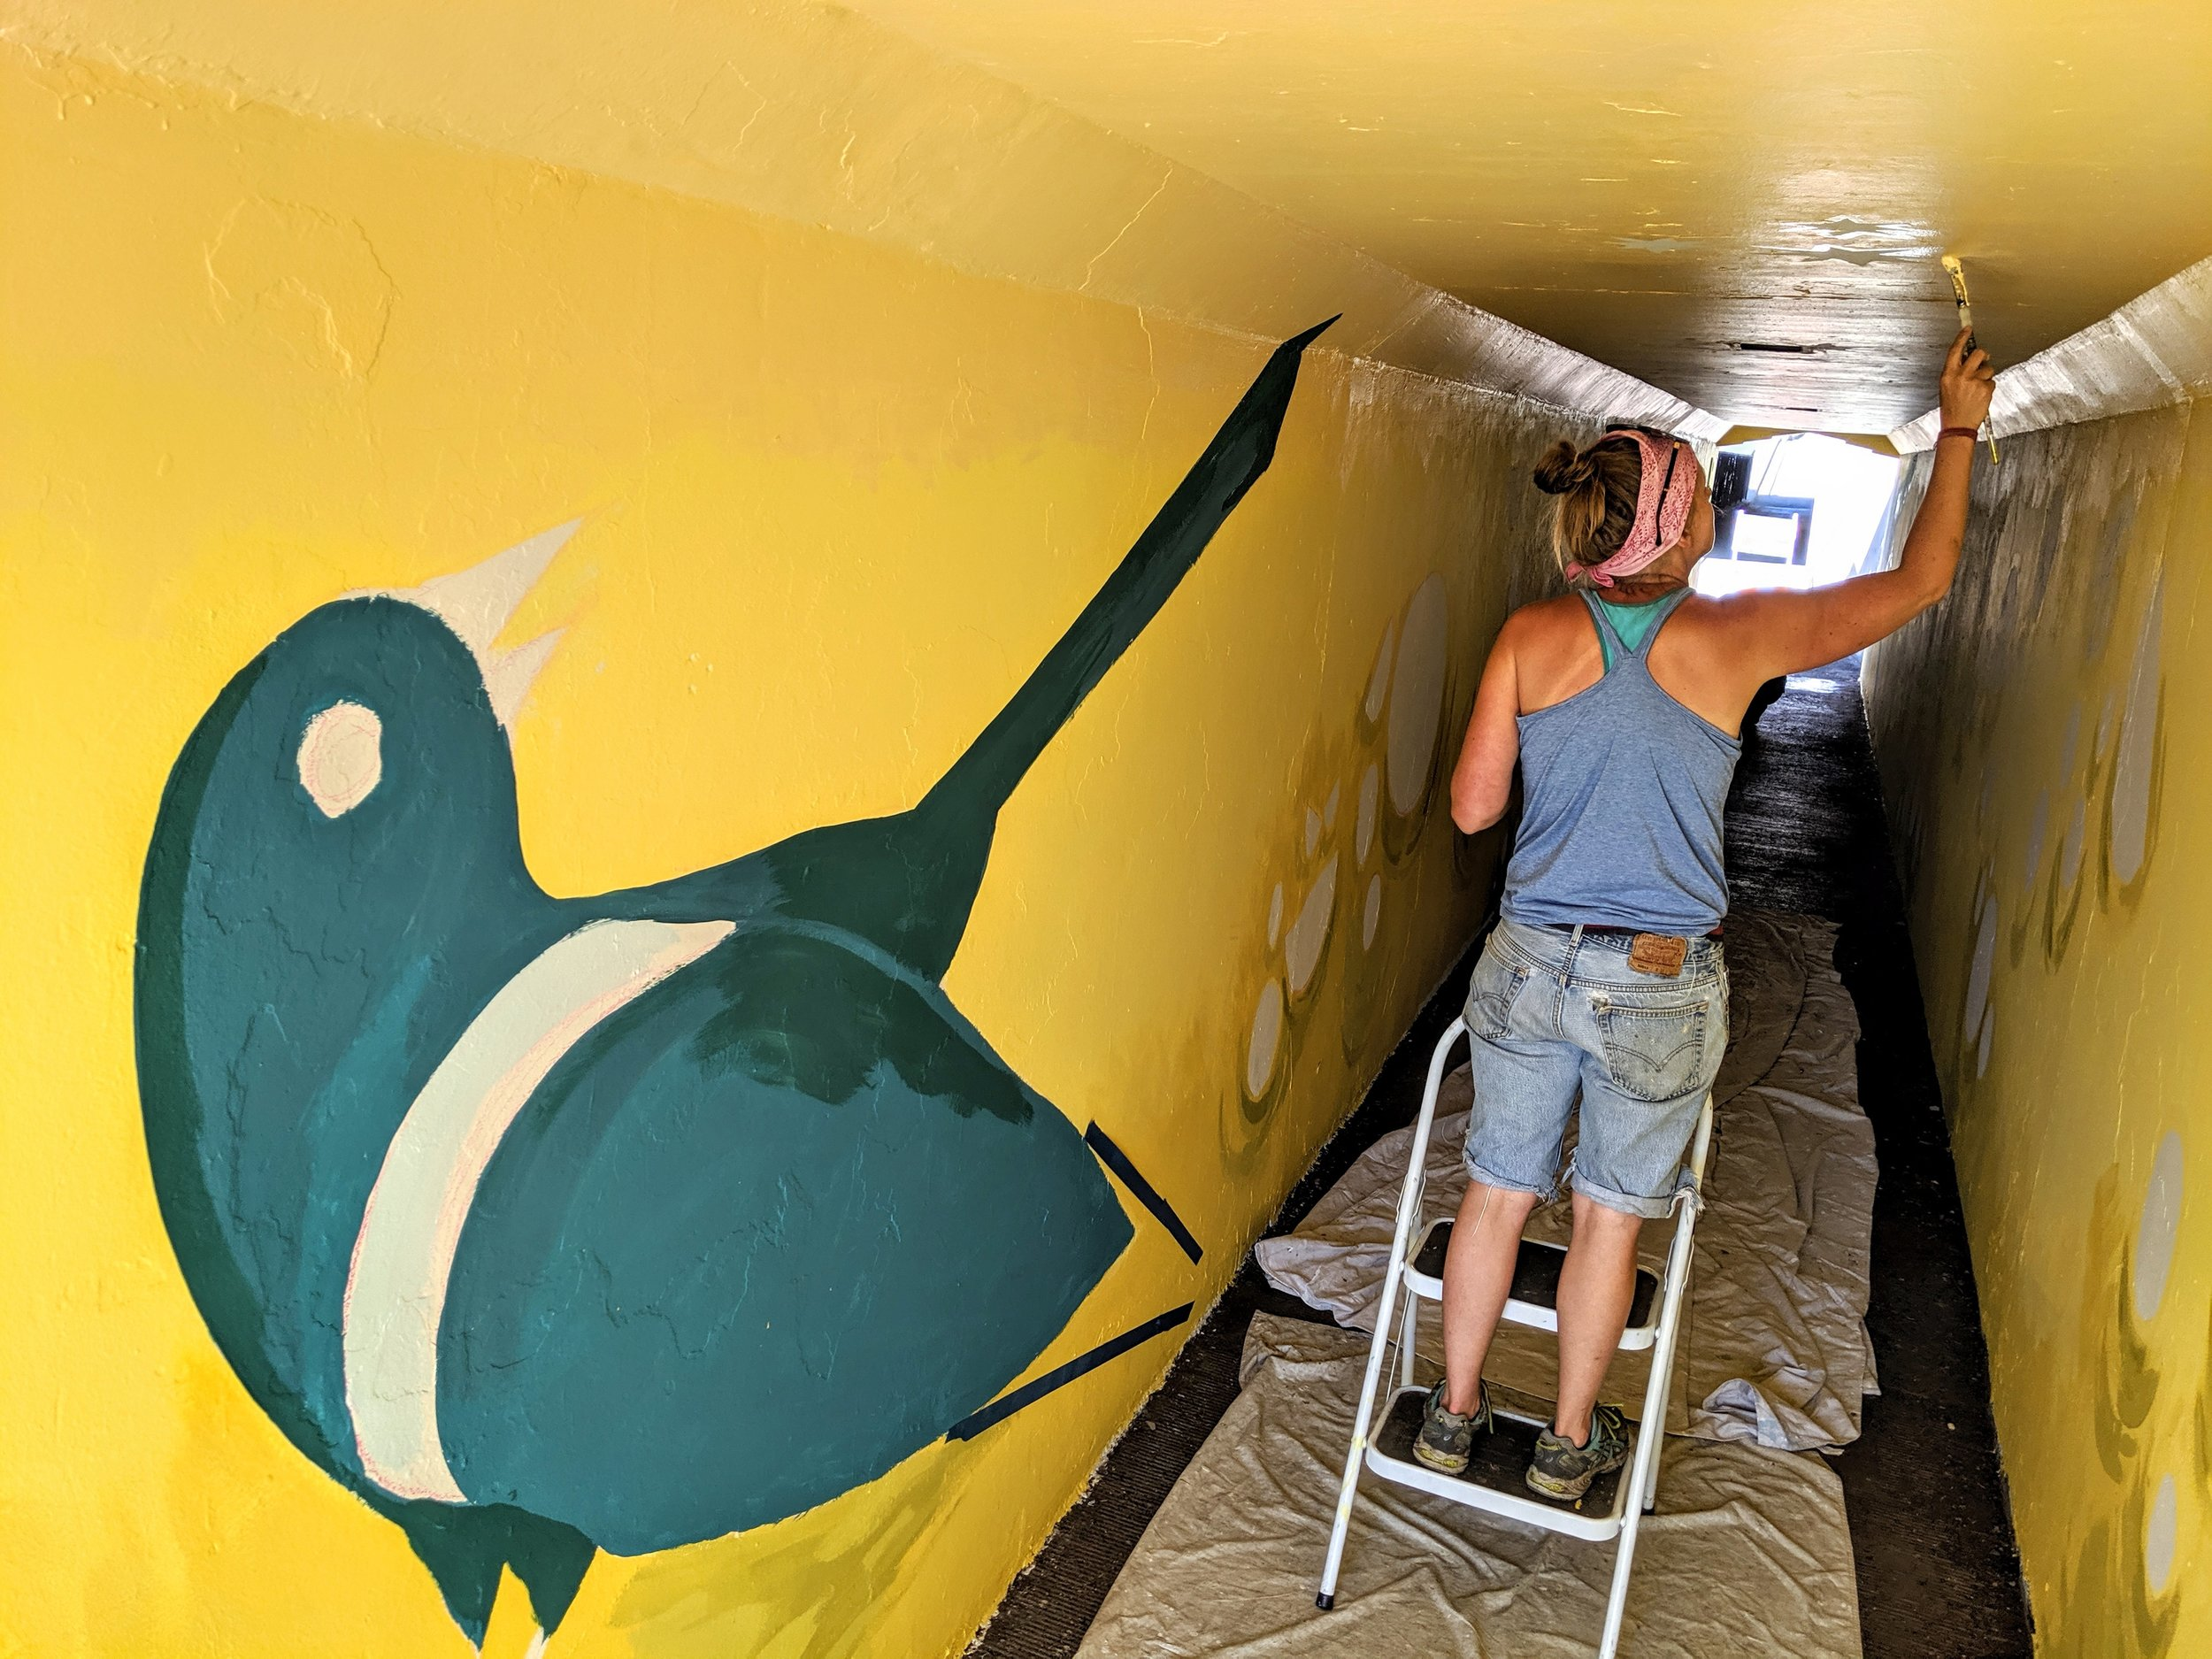 Creating A Public Artway - Local artist and BCD resident Kaycee Anseth is designing a phased approach to creating a public art way within the Franklin underpass.